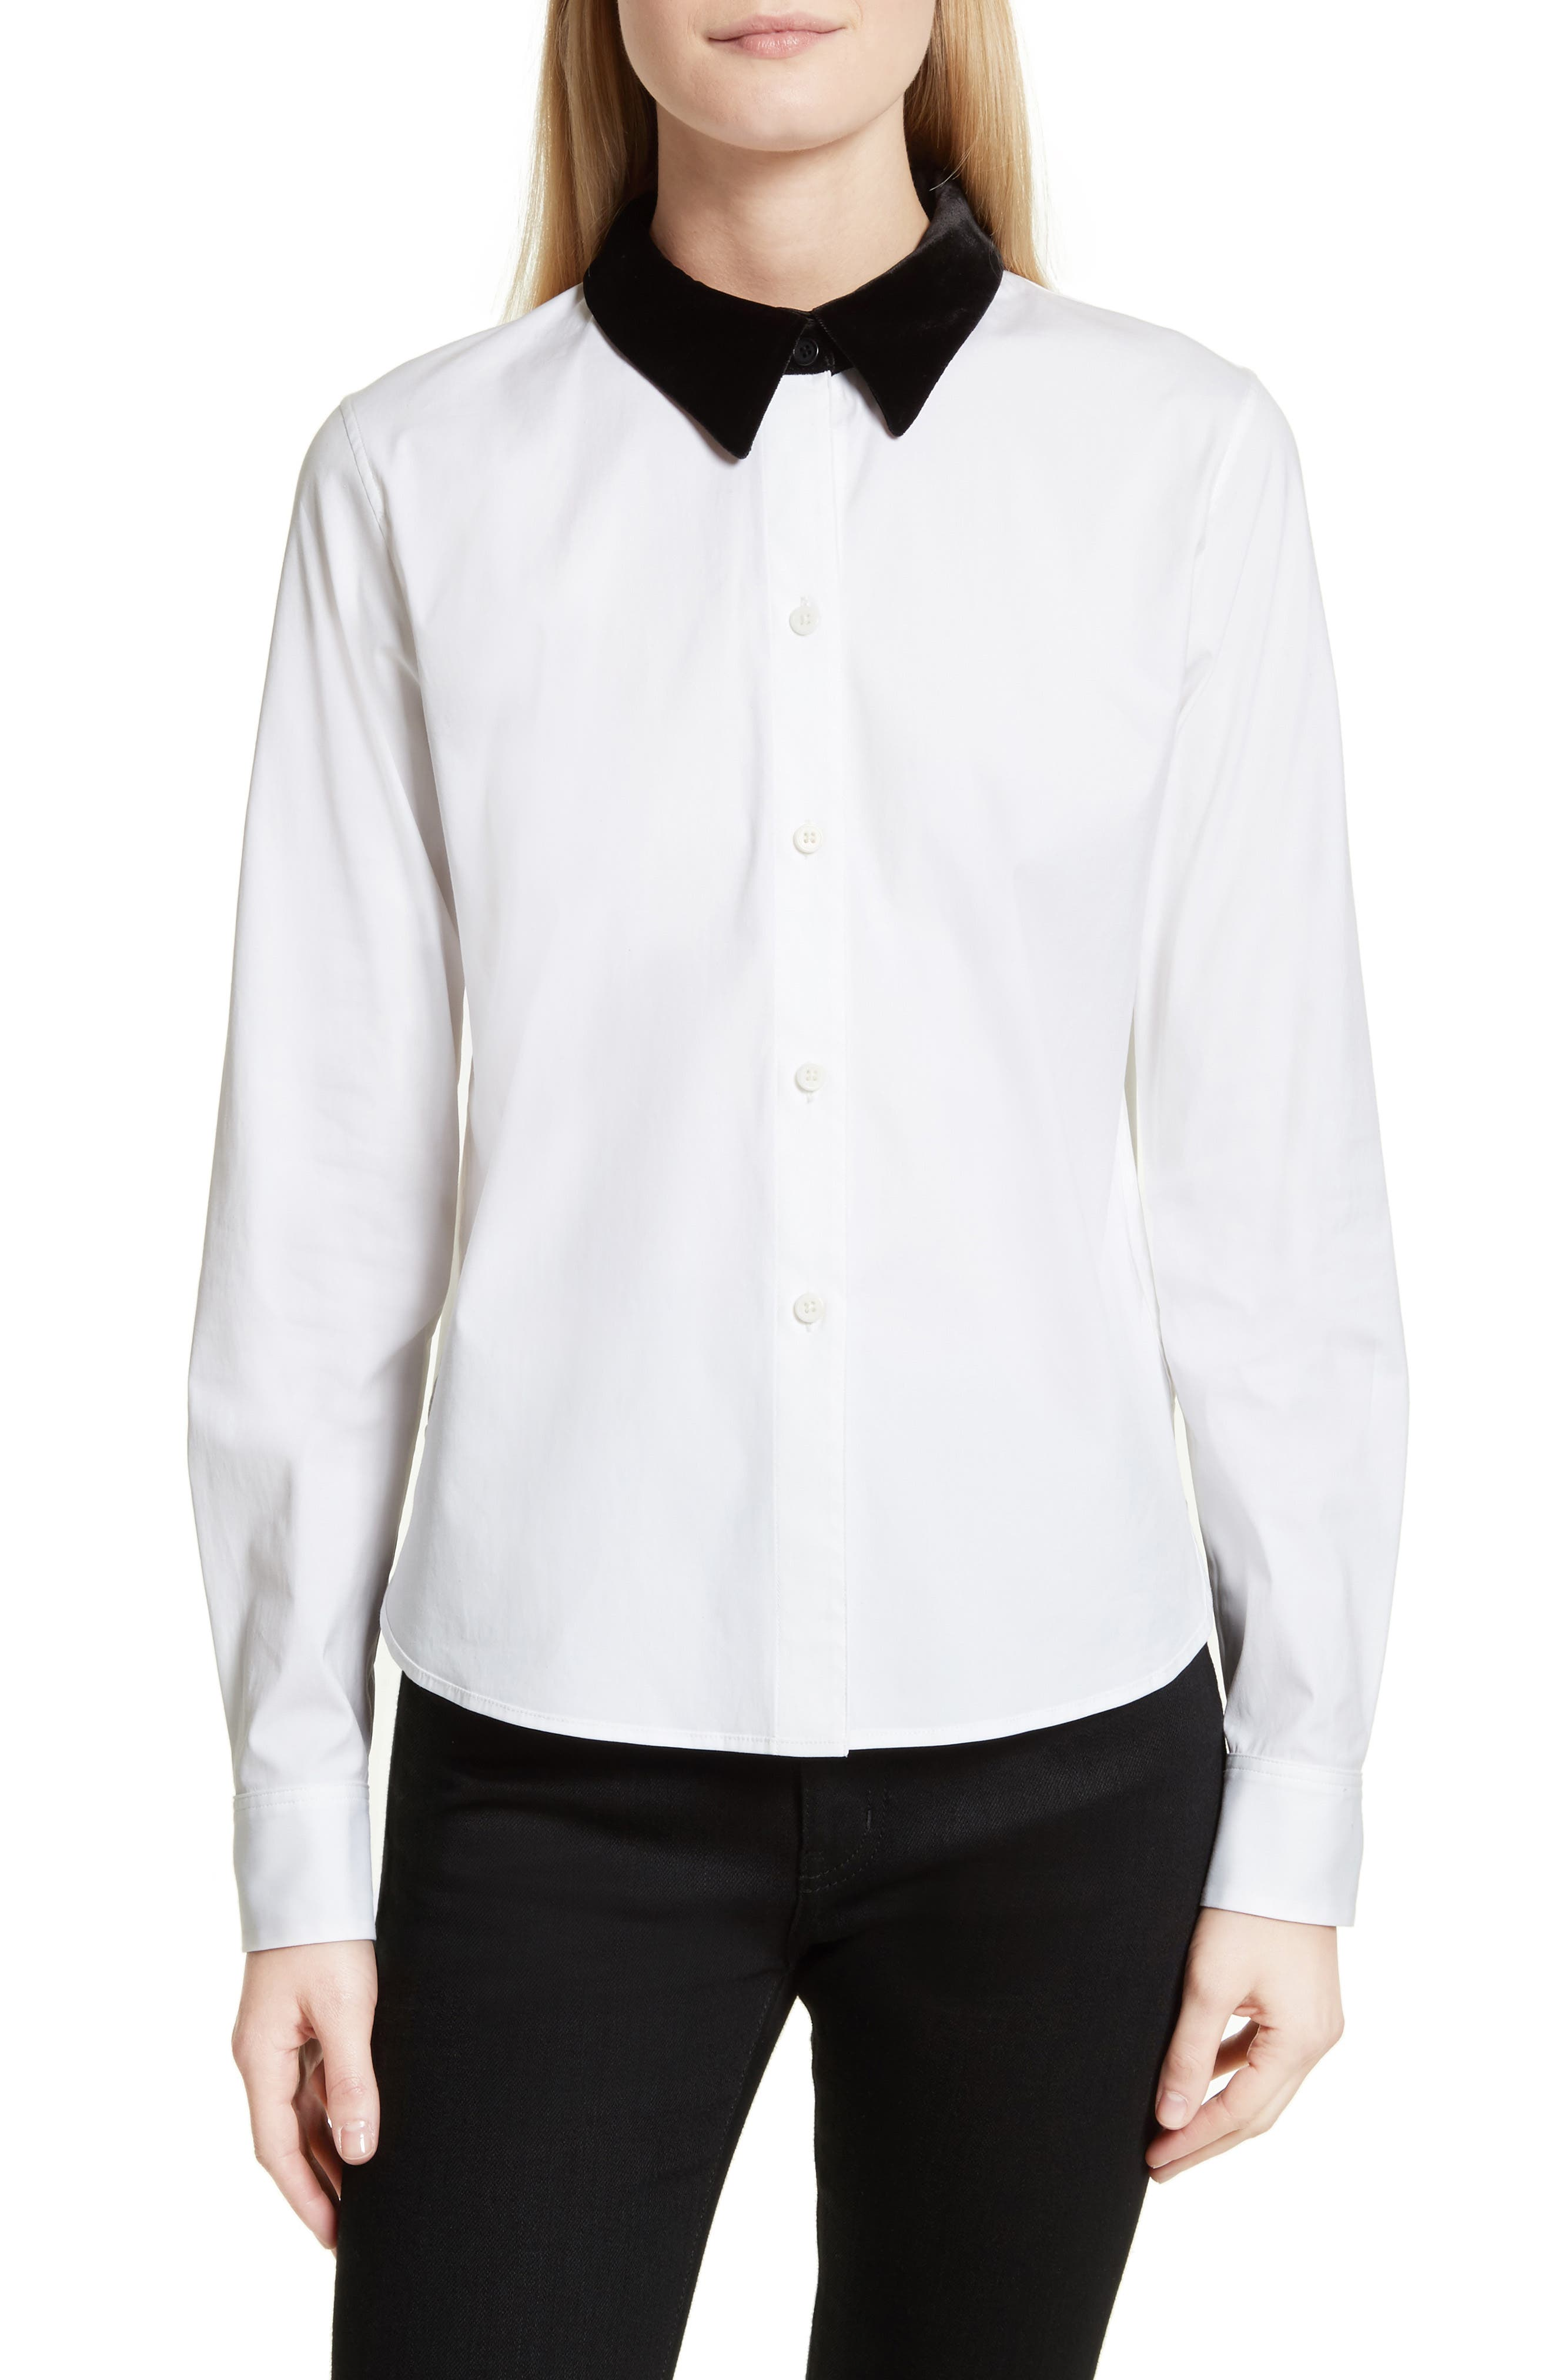 Main Image - Theory Velvet Collar Stretch Cotton Shirt